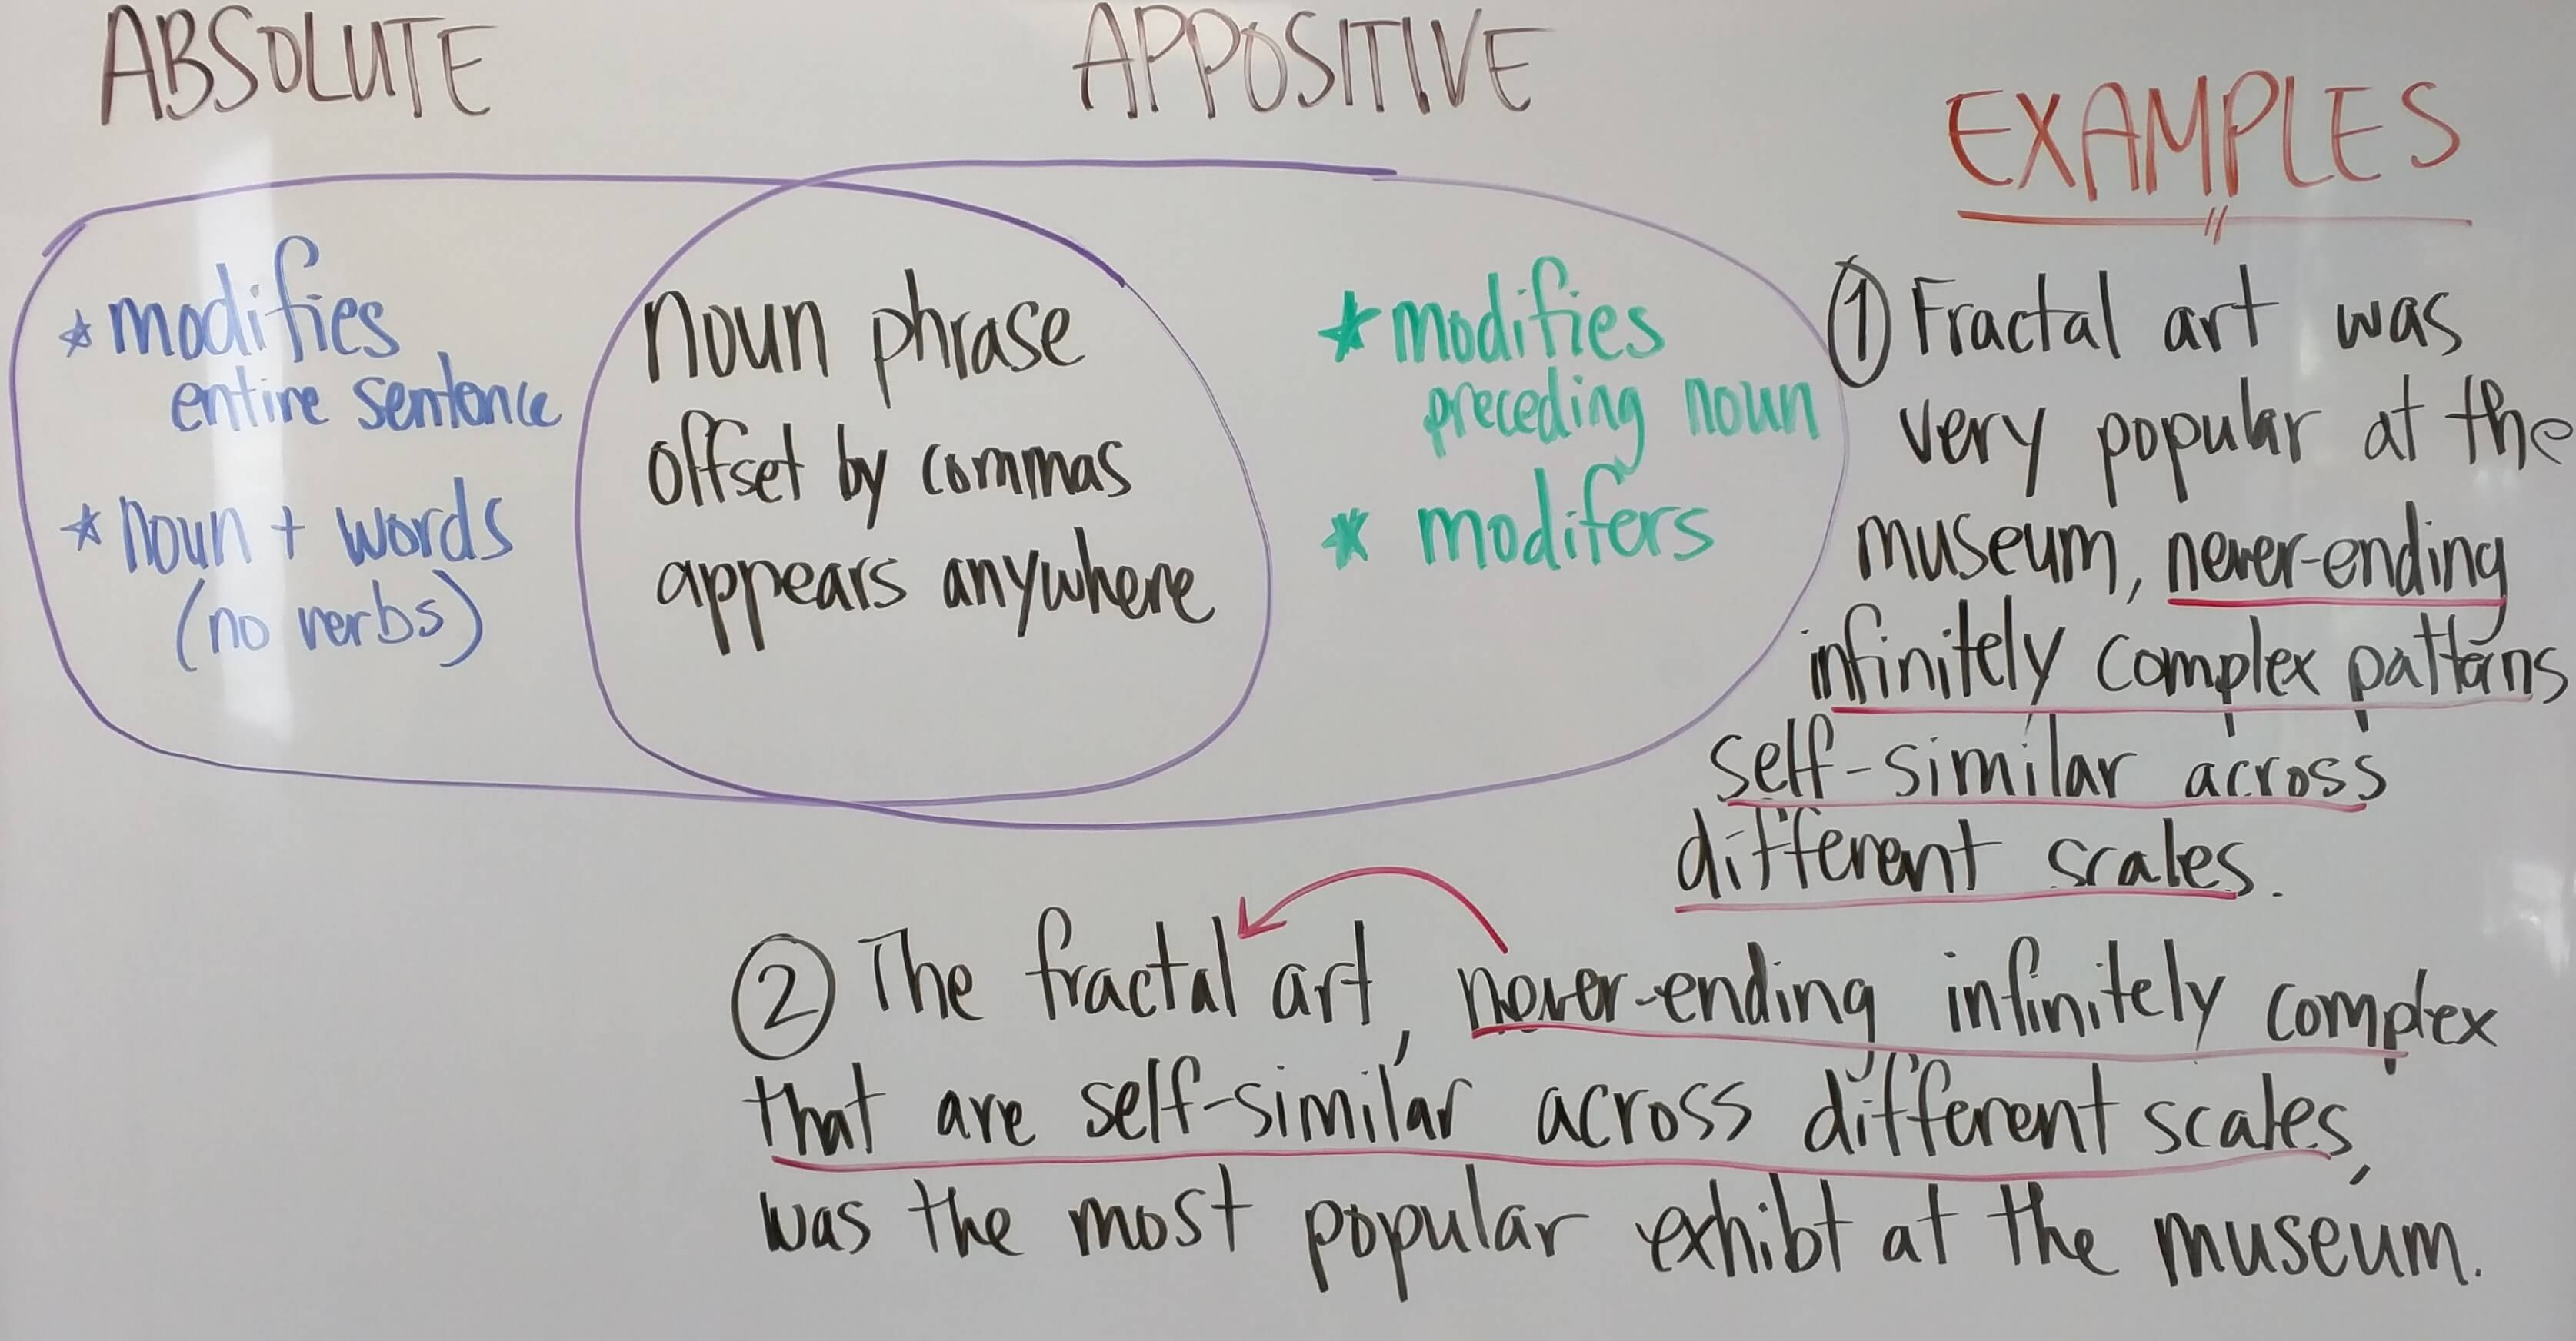 Gmat Tuesdays Sentence Correction Absolute Vs Appositive Phrases